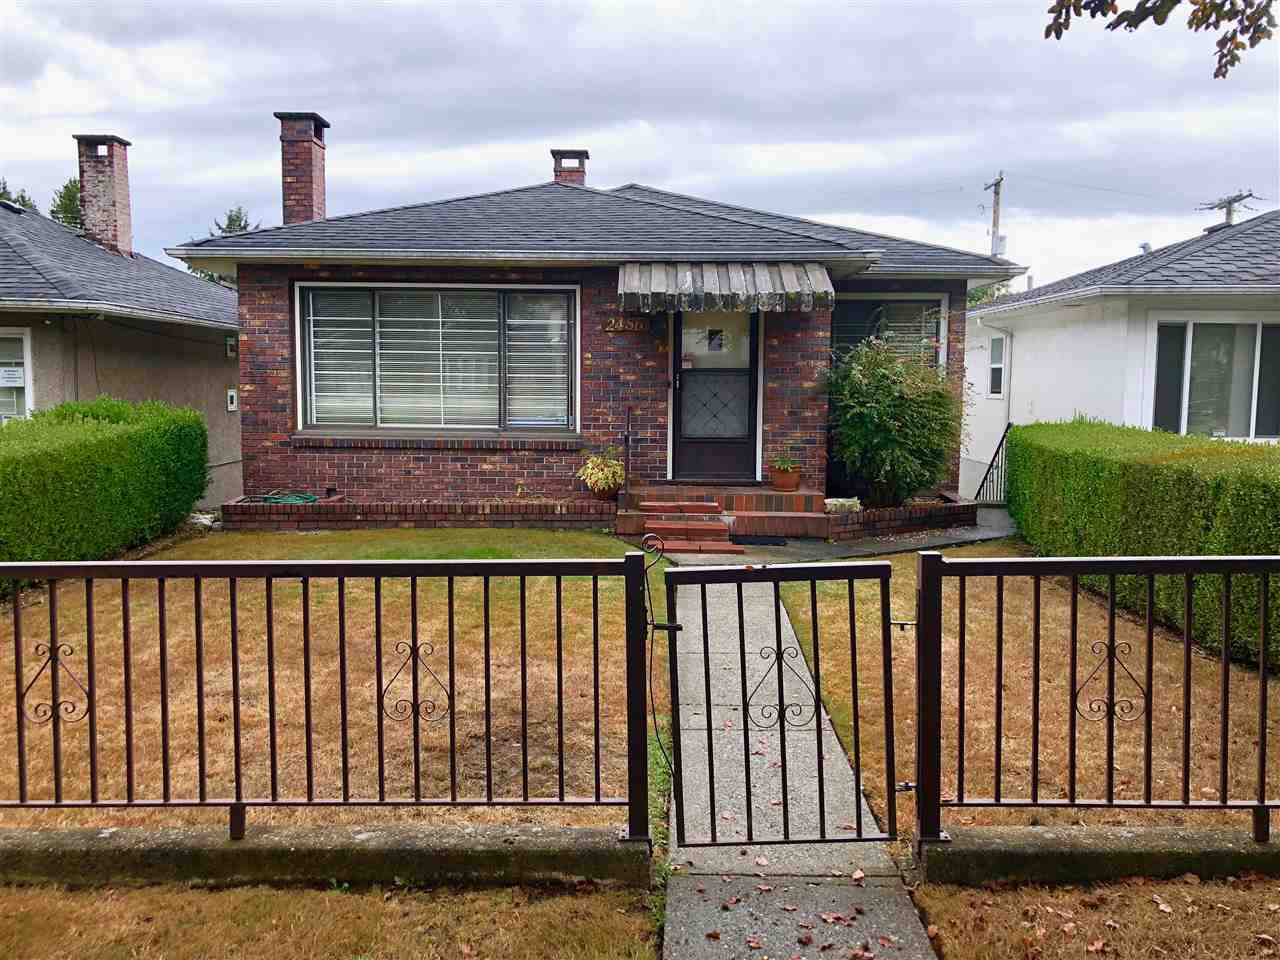 Main Photo: 2456 E 7TH Avenue in Vancouver: Renfrew VE House for sale (Vancouver East)  : MLS®# R2311176